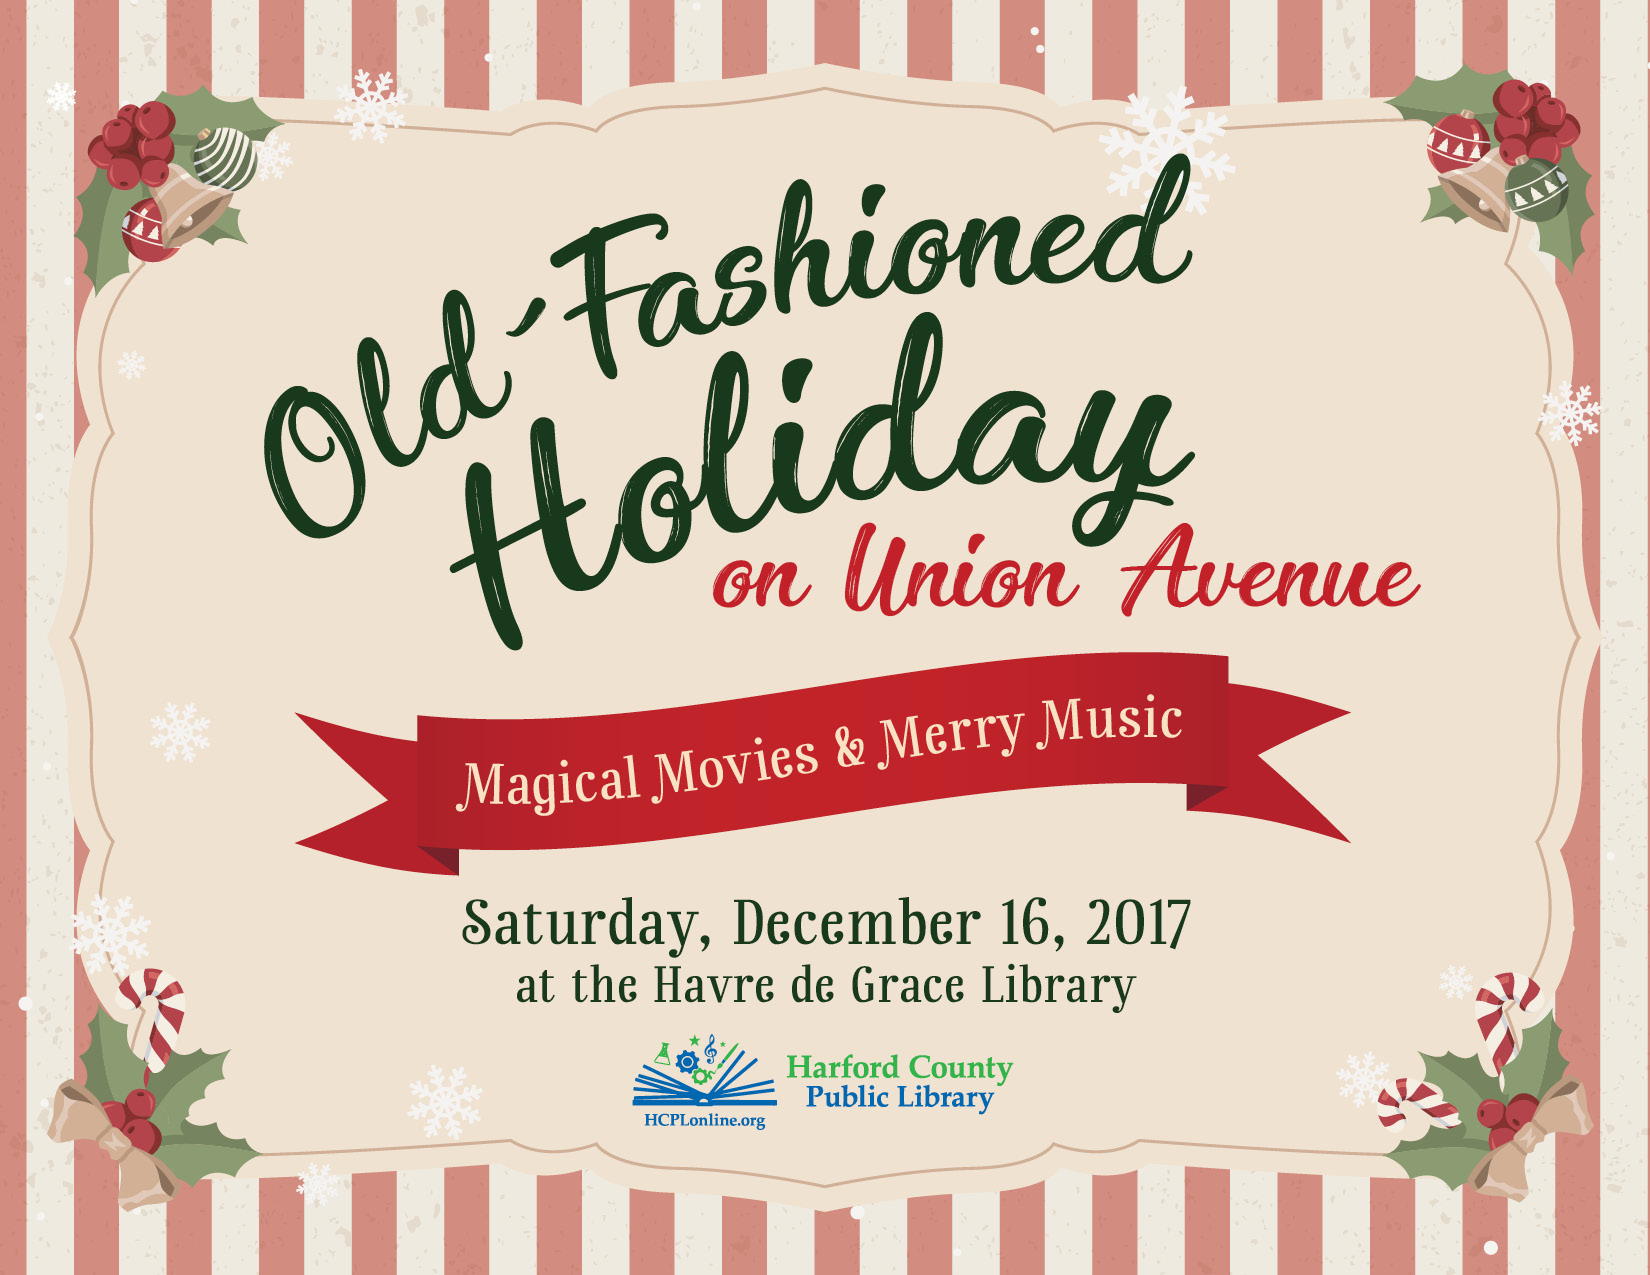 Old-Fashioned Holiday on Union Avenue - Harford County Living